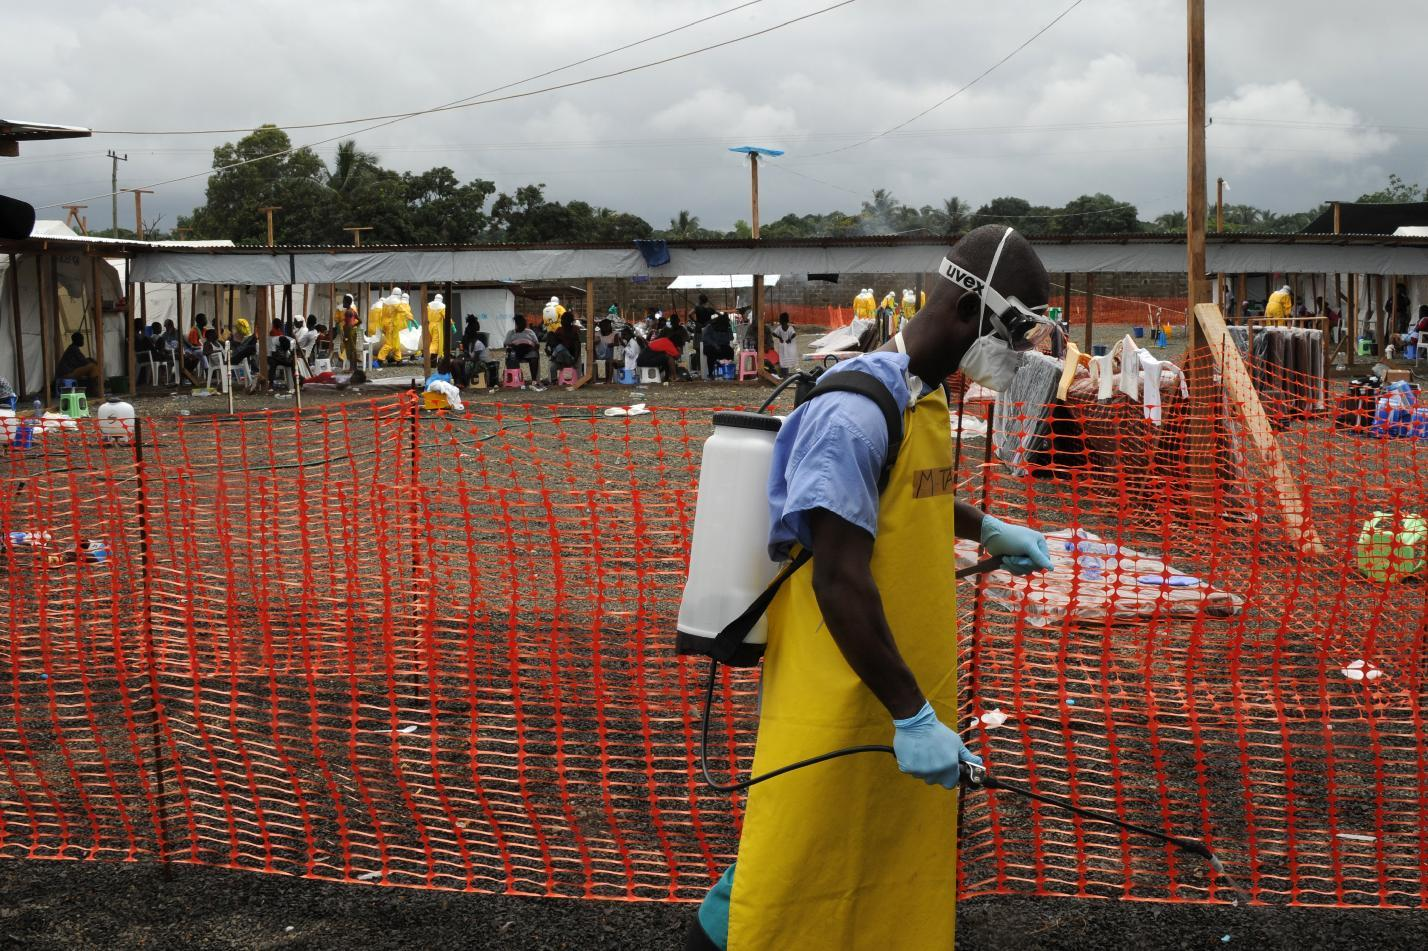 A health care worker disinfects around the high-risk area at Elwa hospital, run by Medecins Sans Frontieres, in Monrovia on August 30, 2014